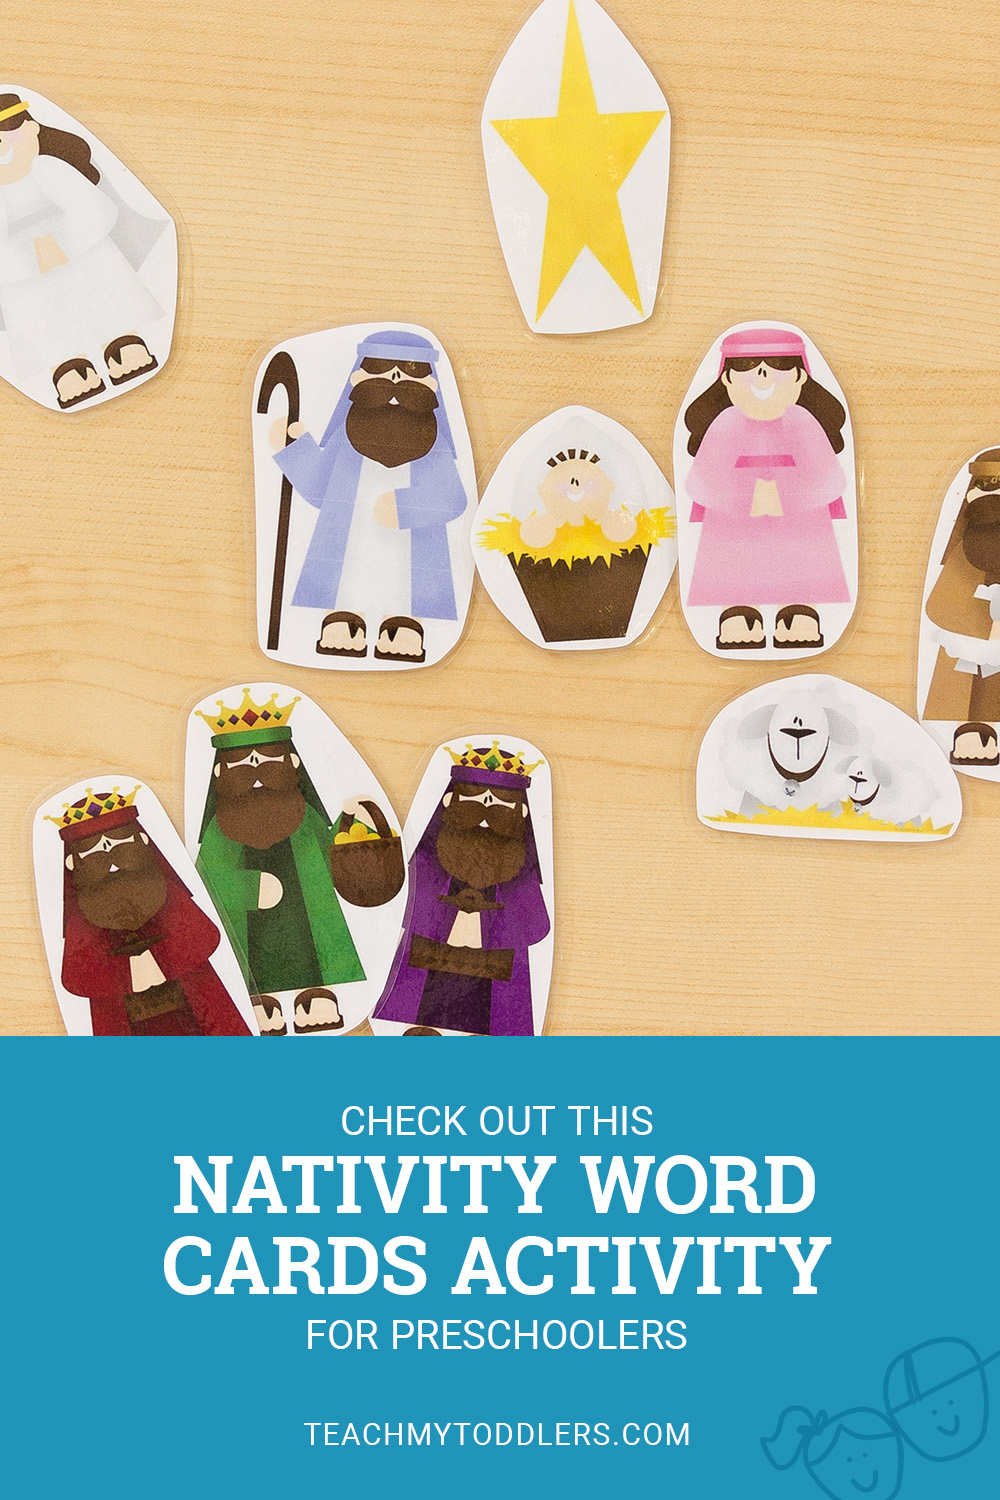 Check out this nativity word cards activity for preschoolers